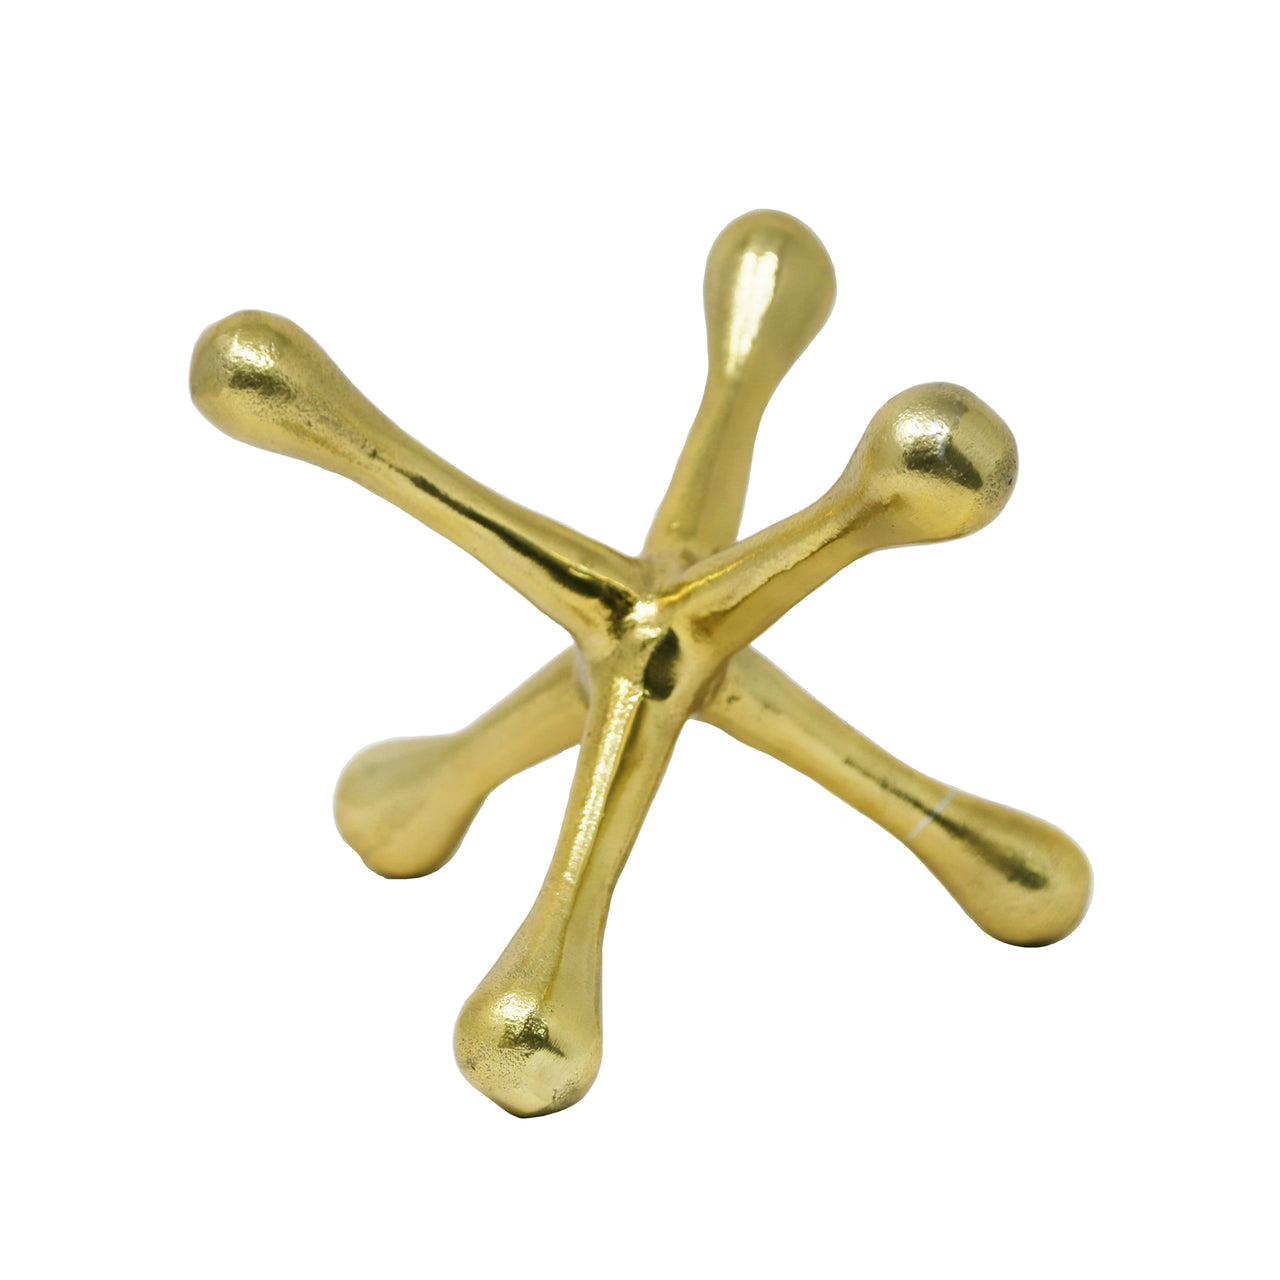 "GOLD METAL JACKS SCULPTURE 8"" - Casa Muebles"